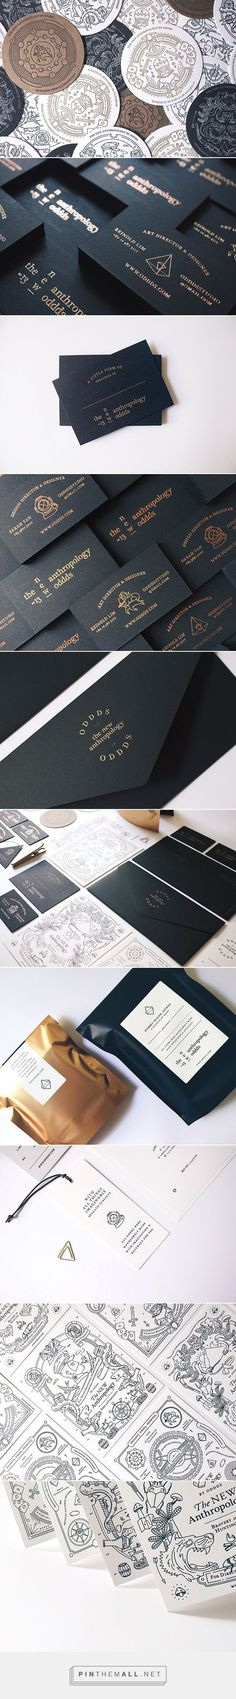 You'll love this sleek anthropology-themed branding | Branding | Creative Bloq http://creativebloq.com